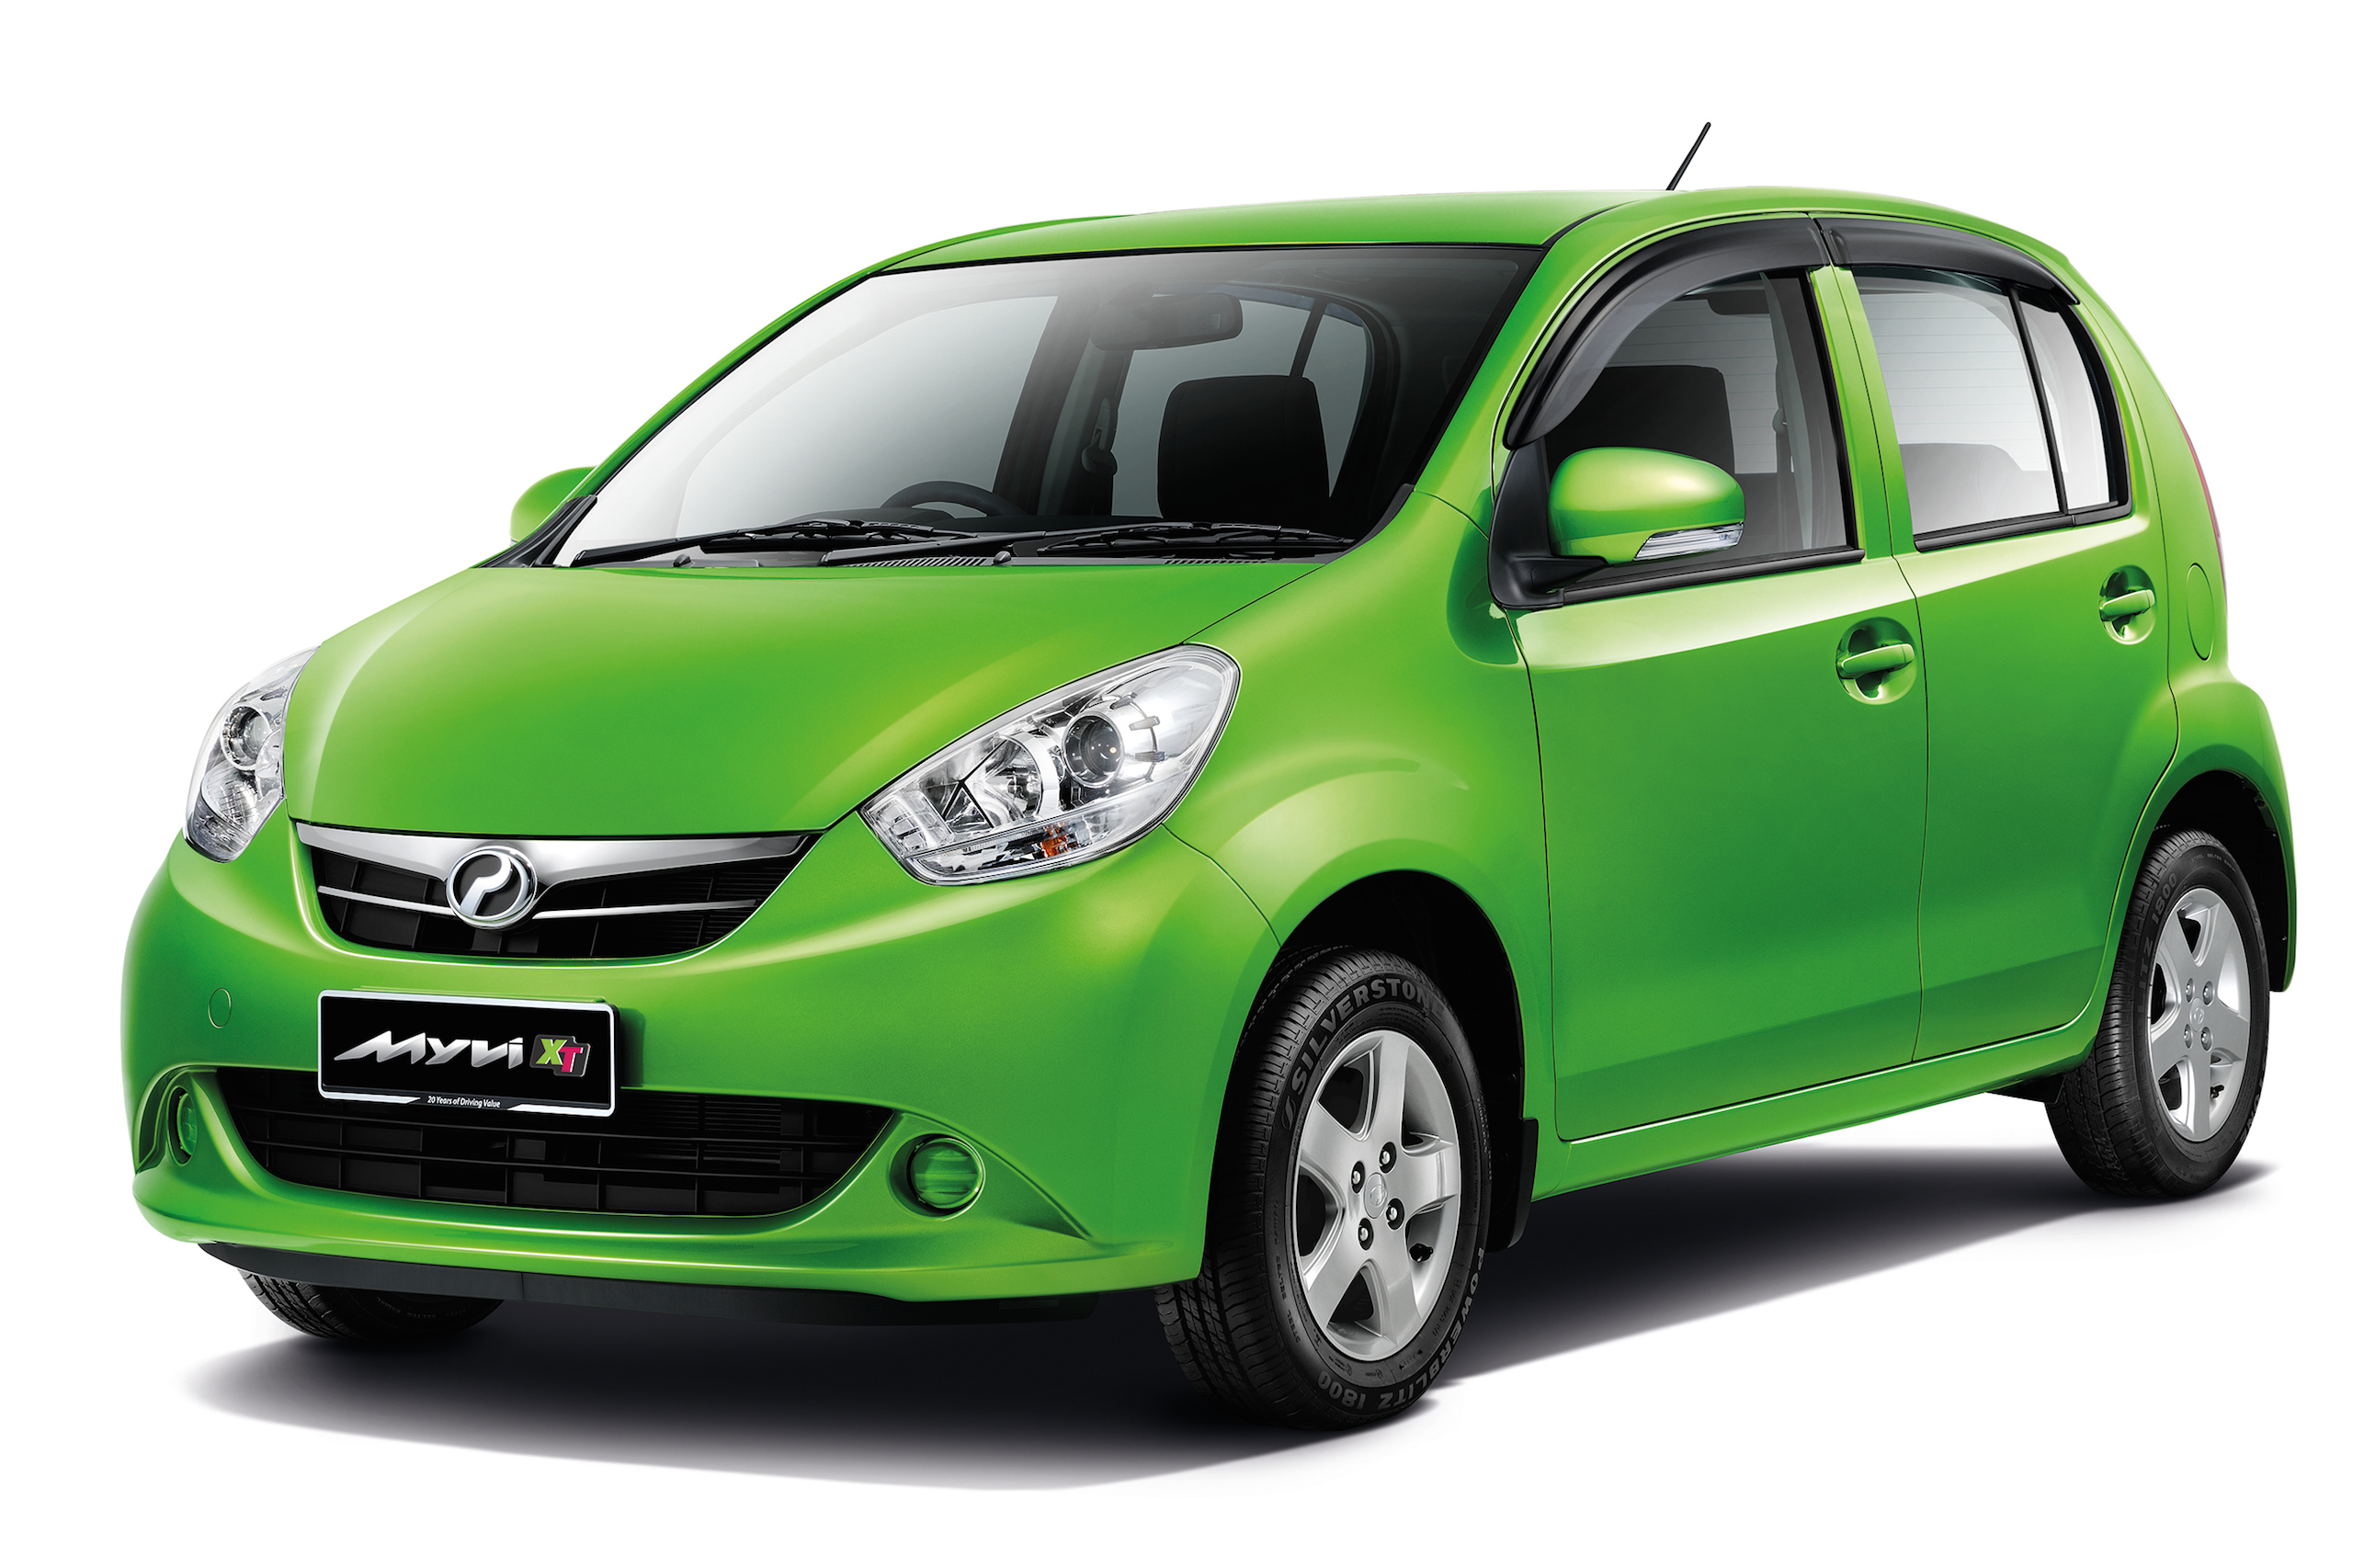 Perodua Myvi Xt New Extreme Launched From Rm42k